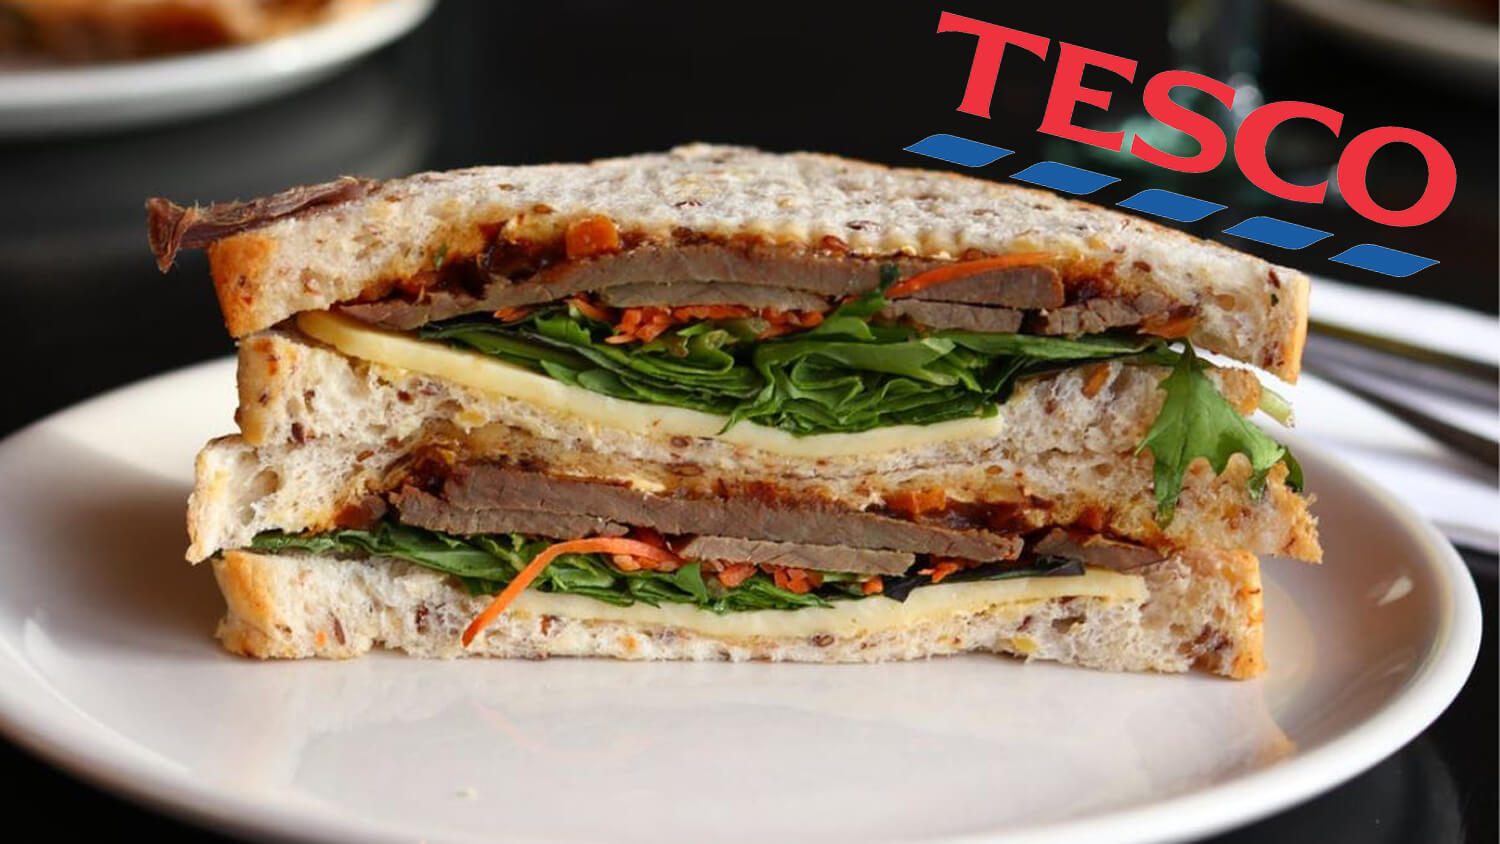 Tesco To Launch Vegan Wicked Healthy Catering Service For